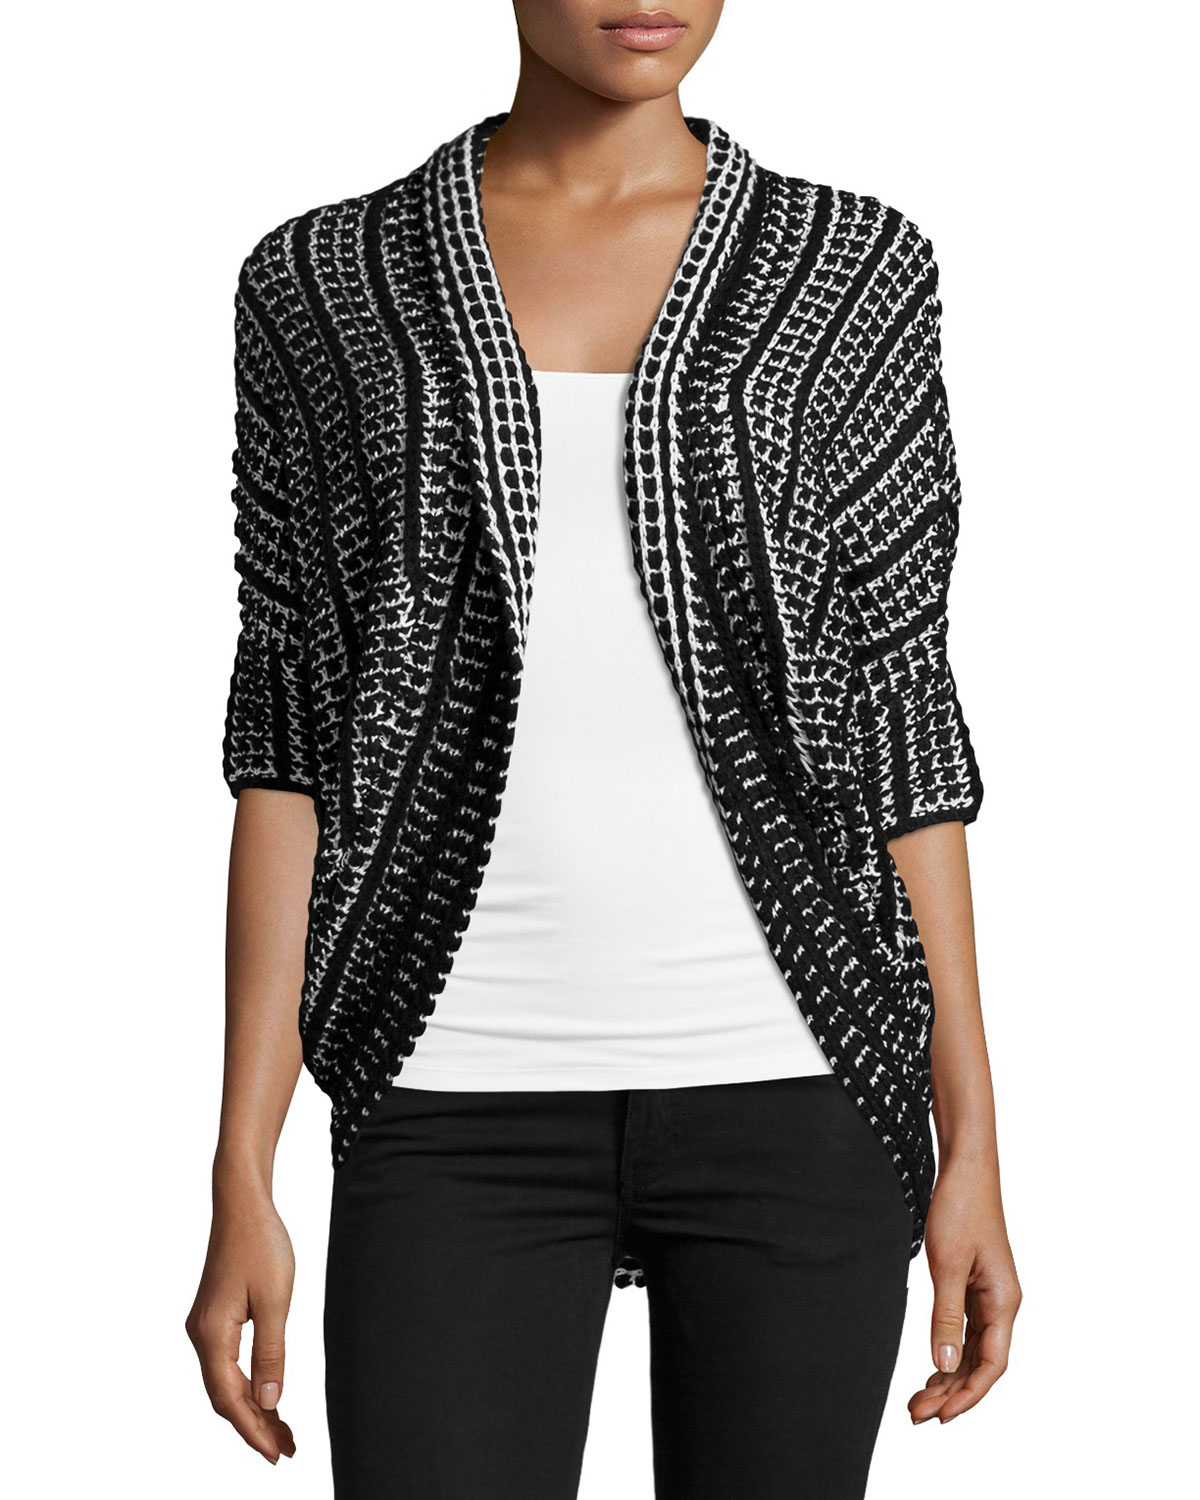 Neiman marcus Short-sleeve Open-front Cocoon Cardigan in Black | Lyst